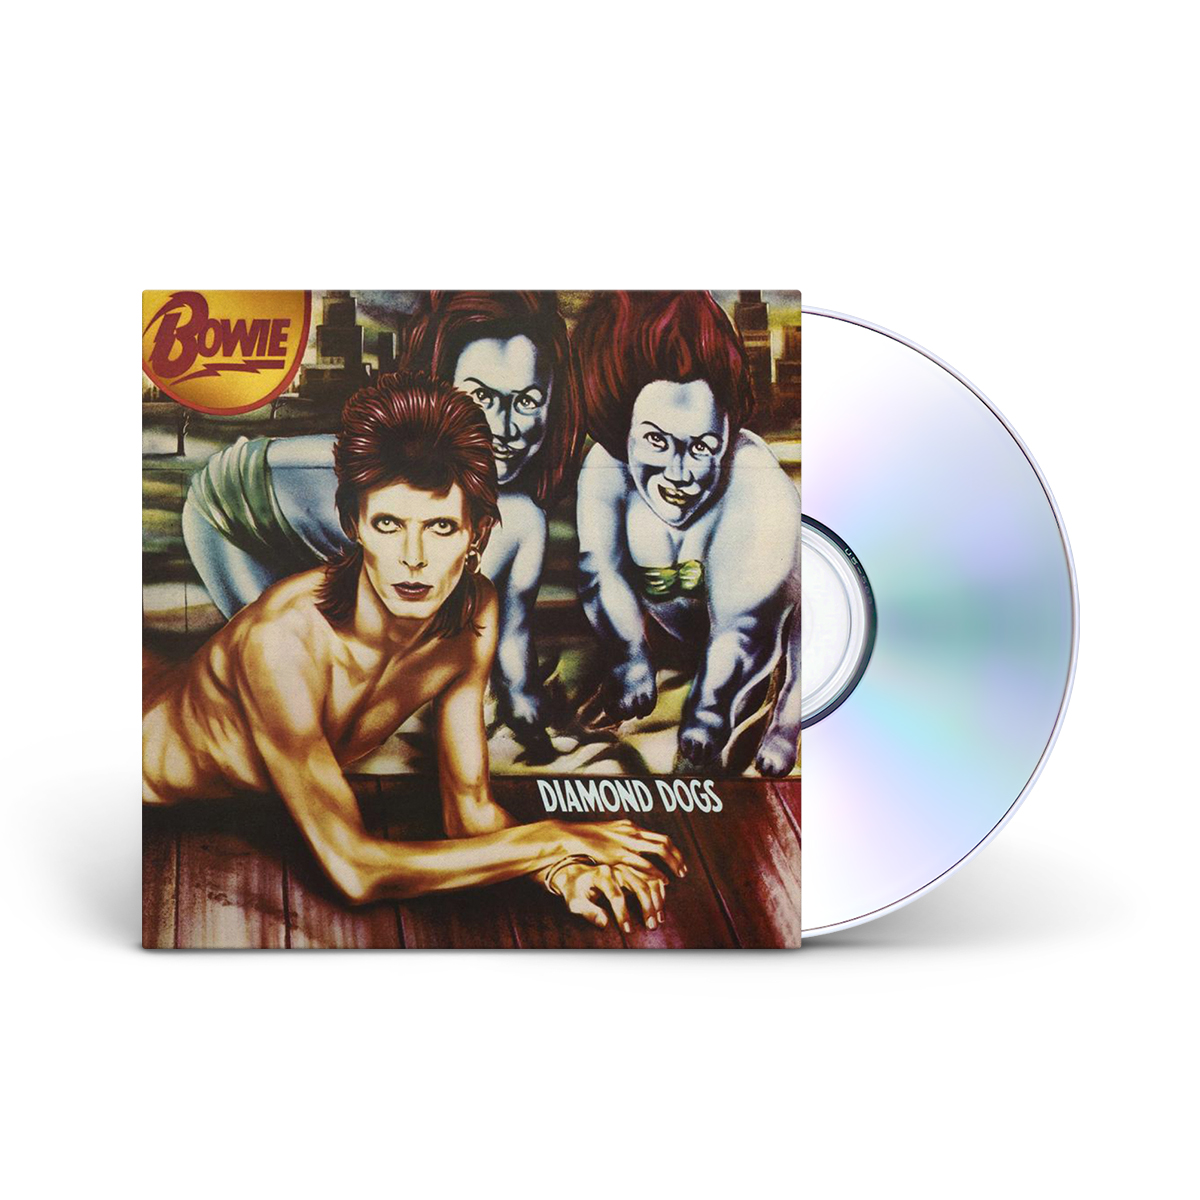 David Bowie Diamond Dogs (2016 Remastered Version) CD